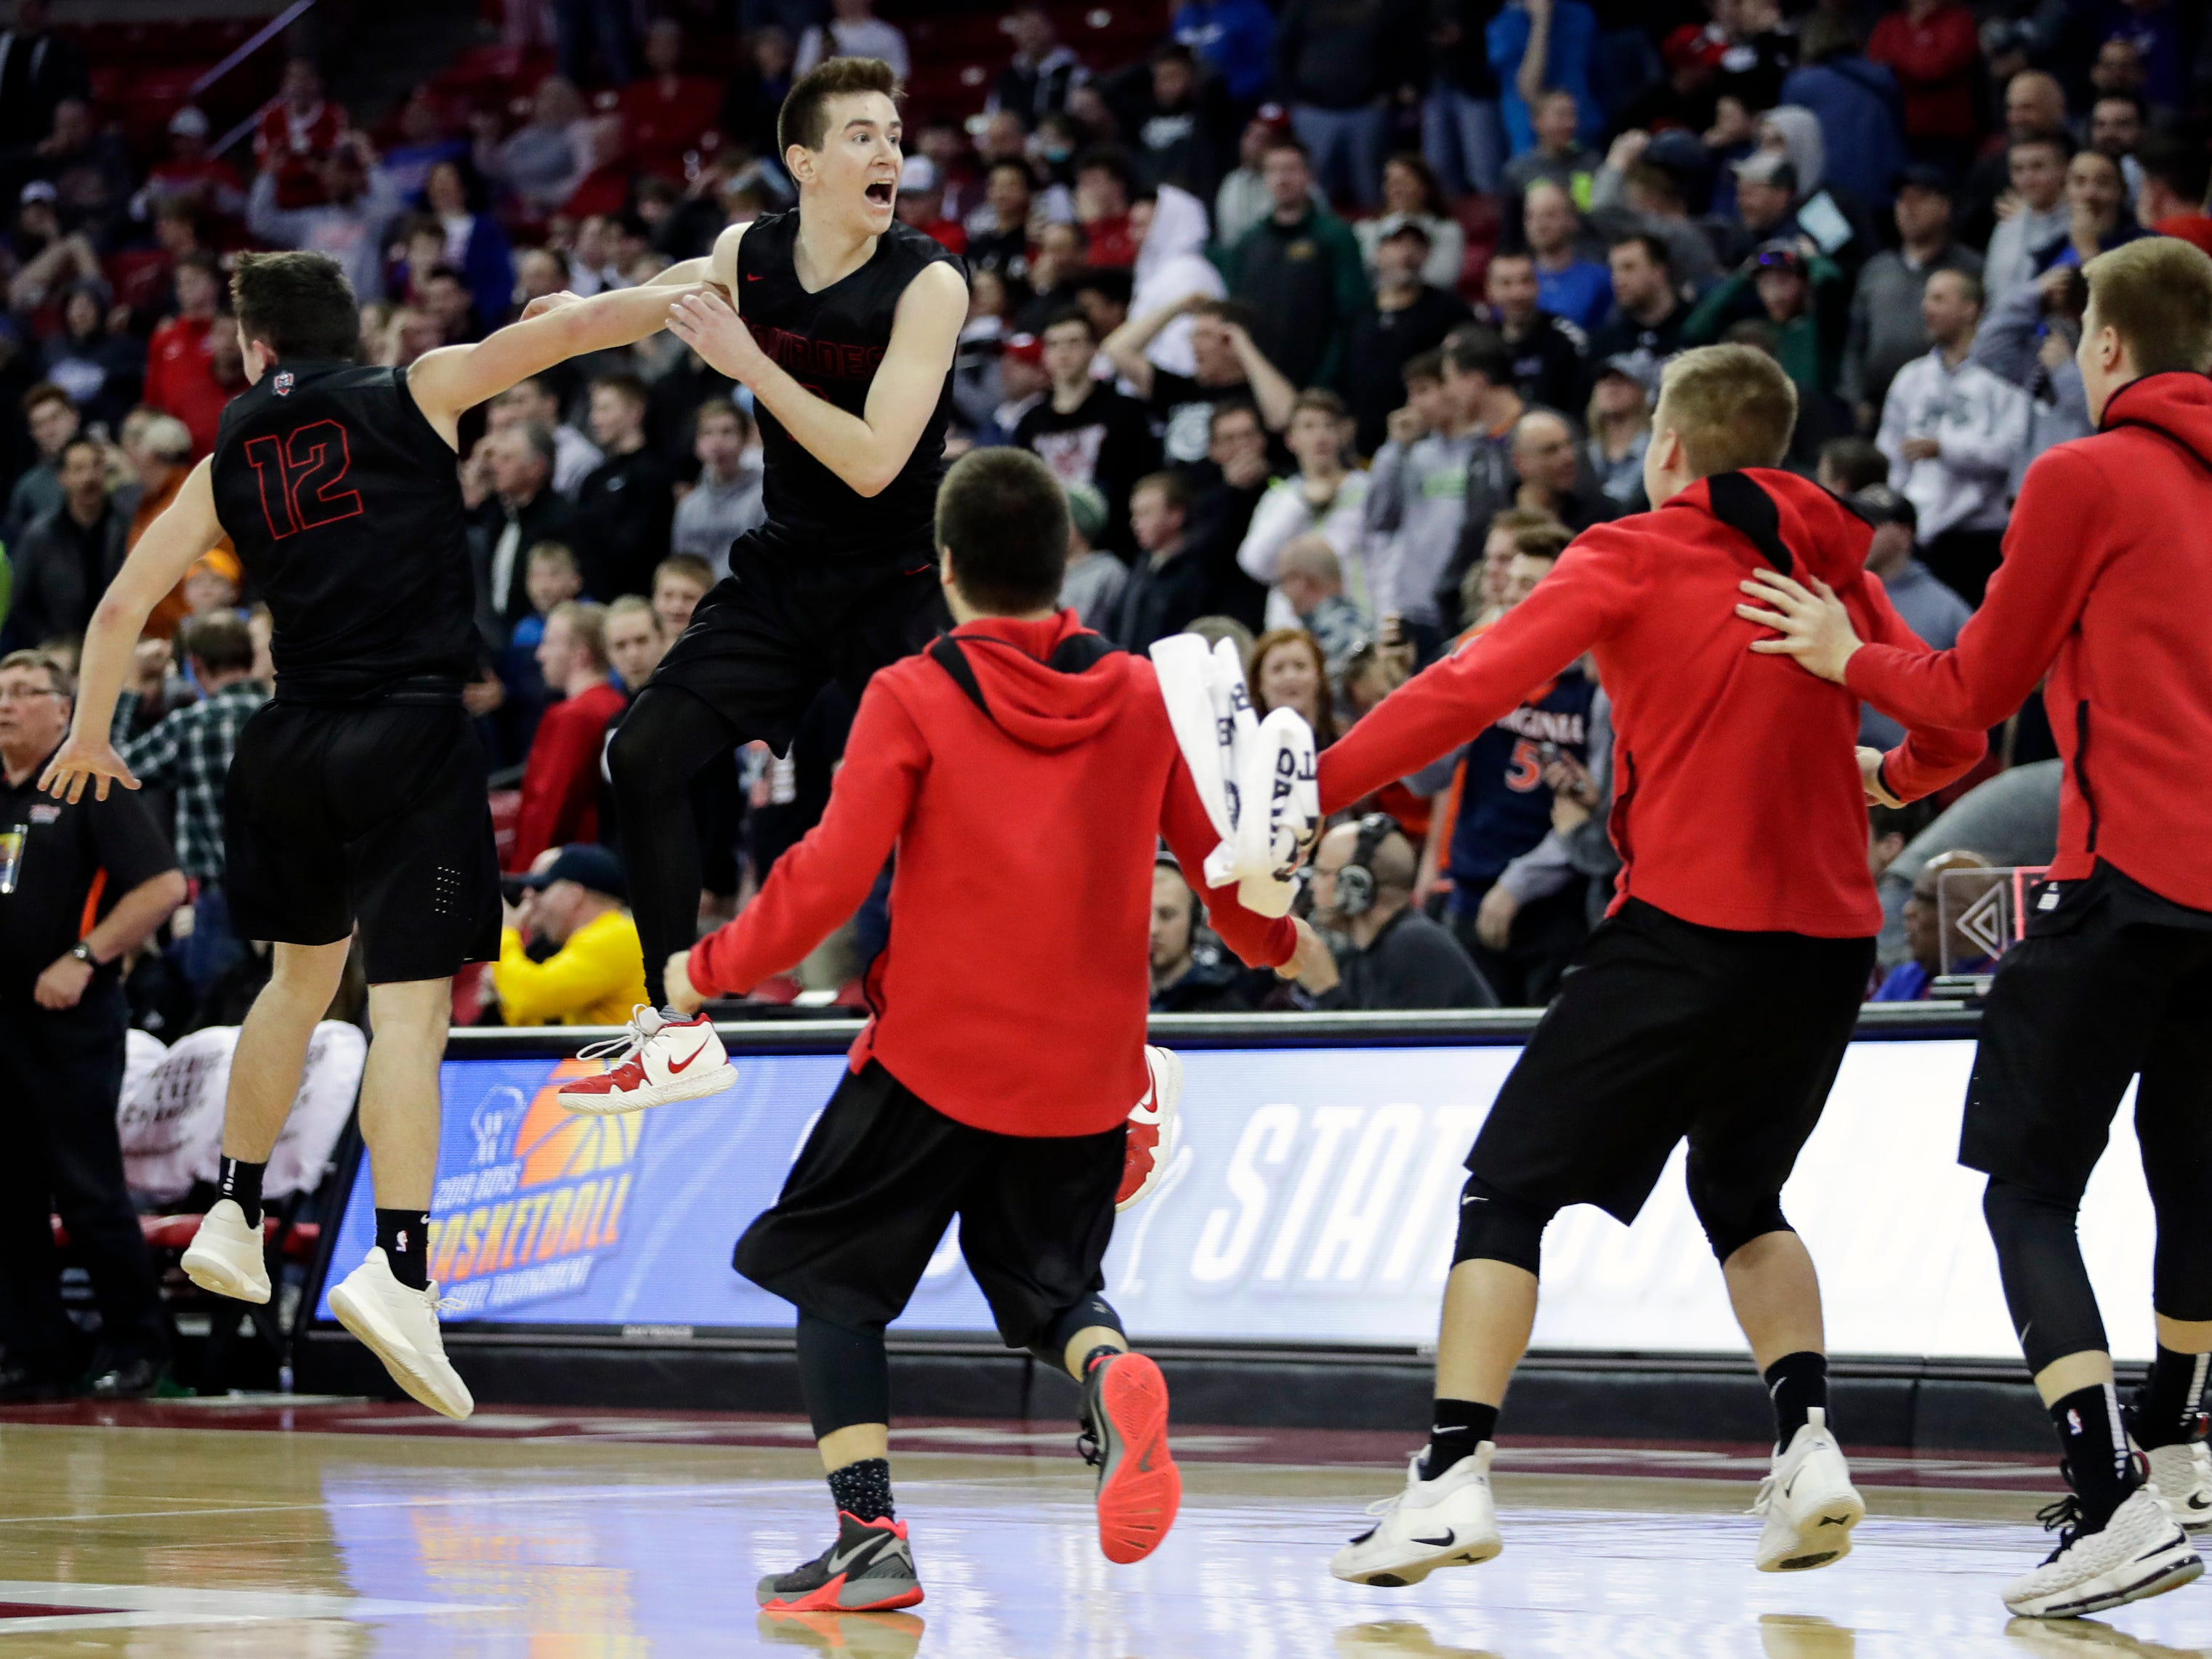 Lourdes Academy's Joshua Bauer (12) and Henry Noone (2) react after defeating Osseo-Fairchild High School in their WIAA Division 4 boys basketball state semifinal at the Kohl Center Thursday, March 14, 2019, in Madison, Wis.